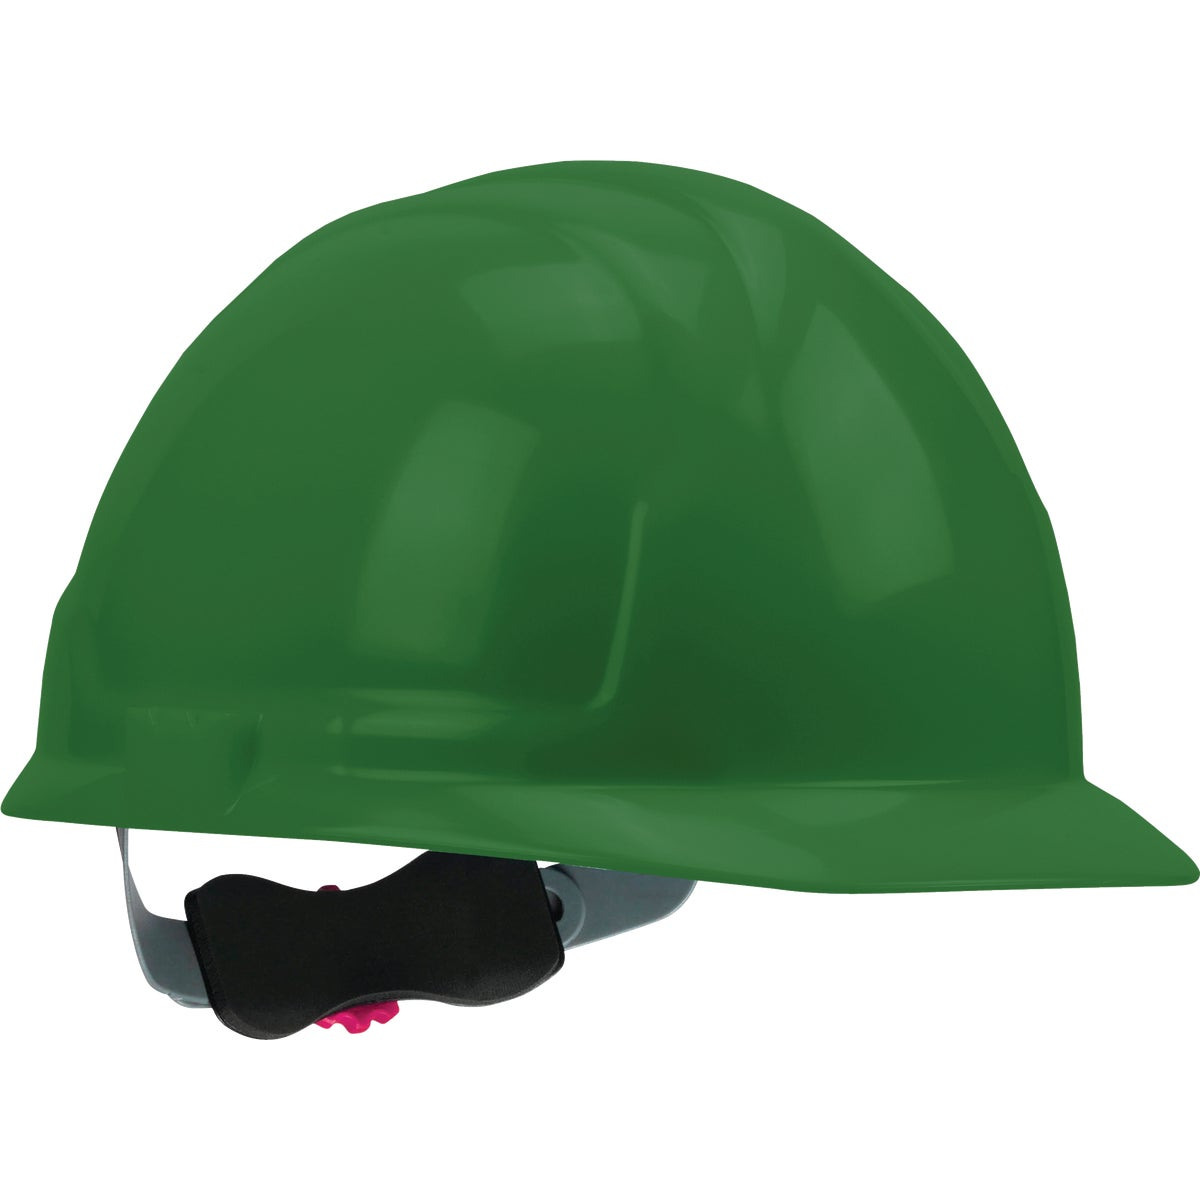 RATCHET GREEN HARD HAT - 475362 by Msa Safety